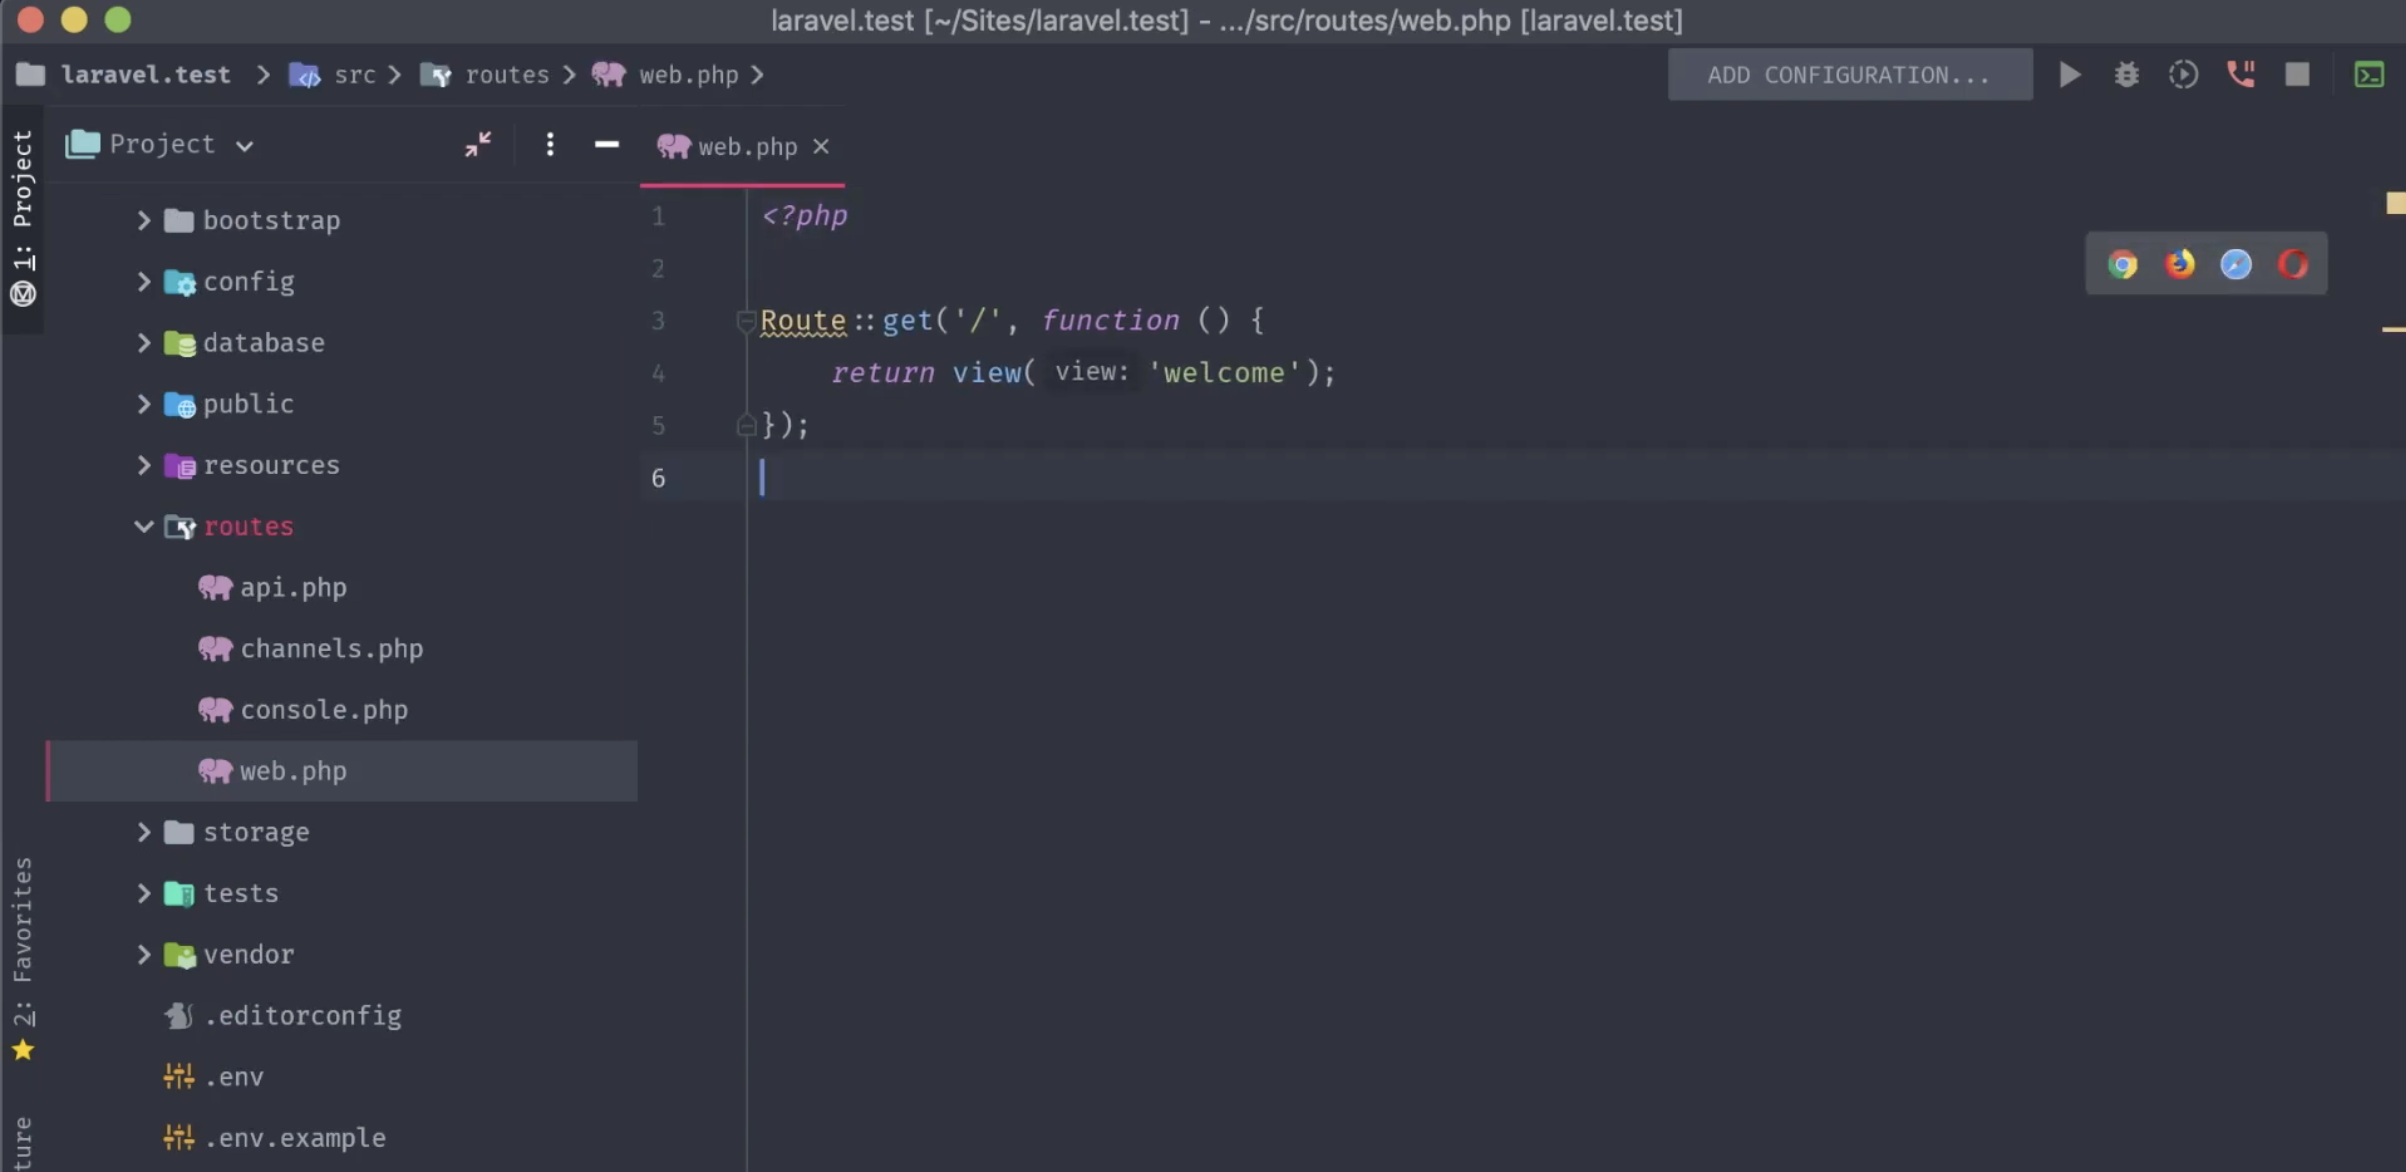 Our blank Laravel project's web.php route file